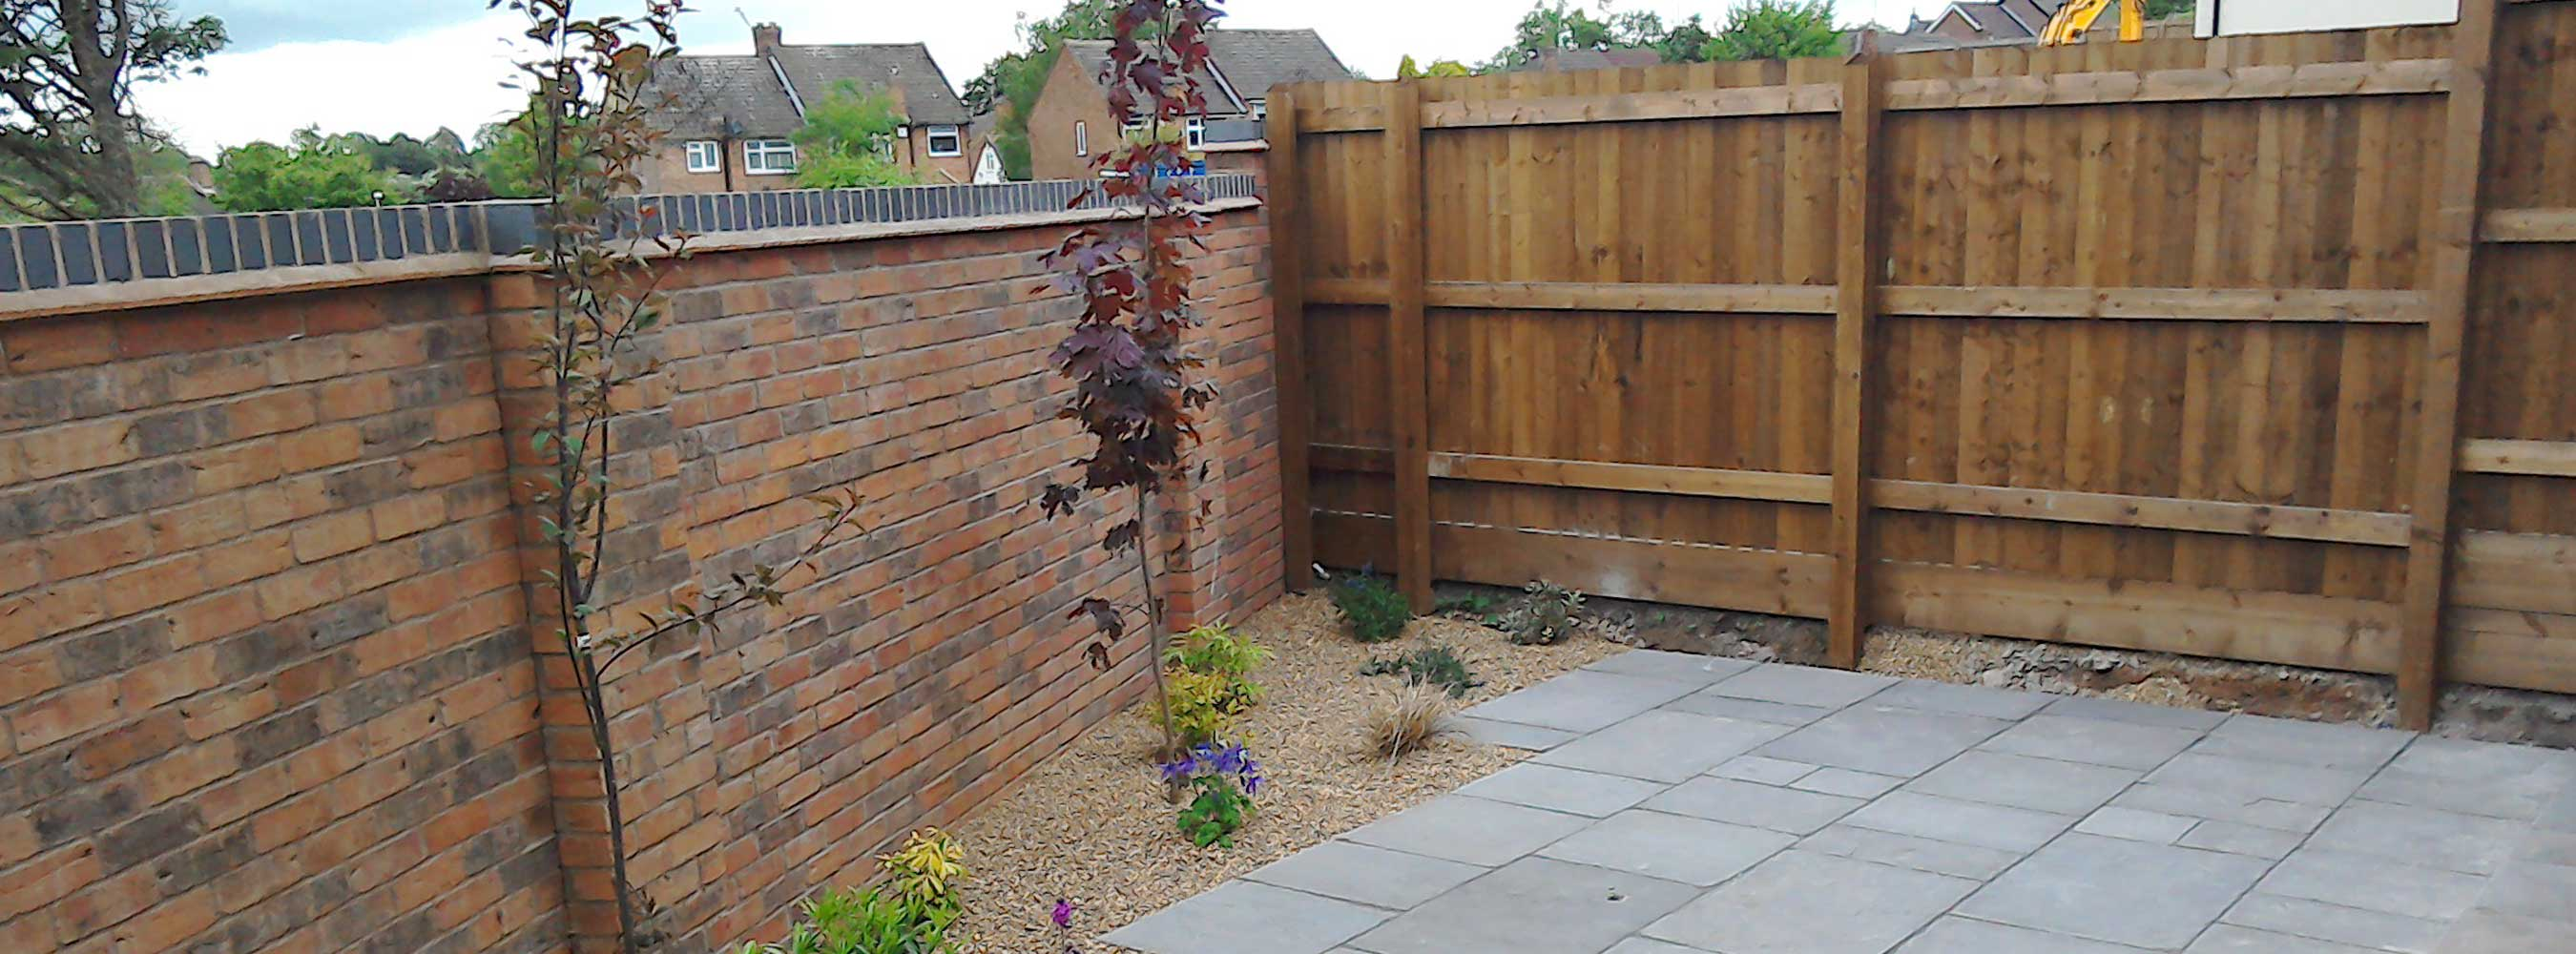 Reclaimed bricks can make a lovely garden feature whilst providing security or acting as a retaining wall.